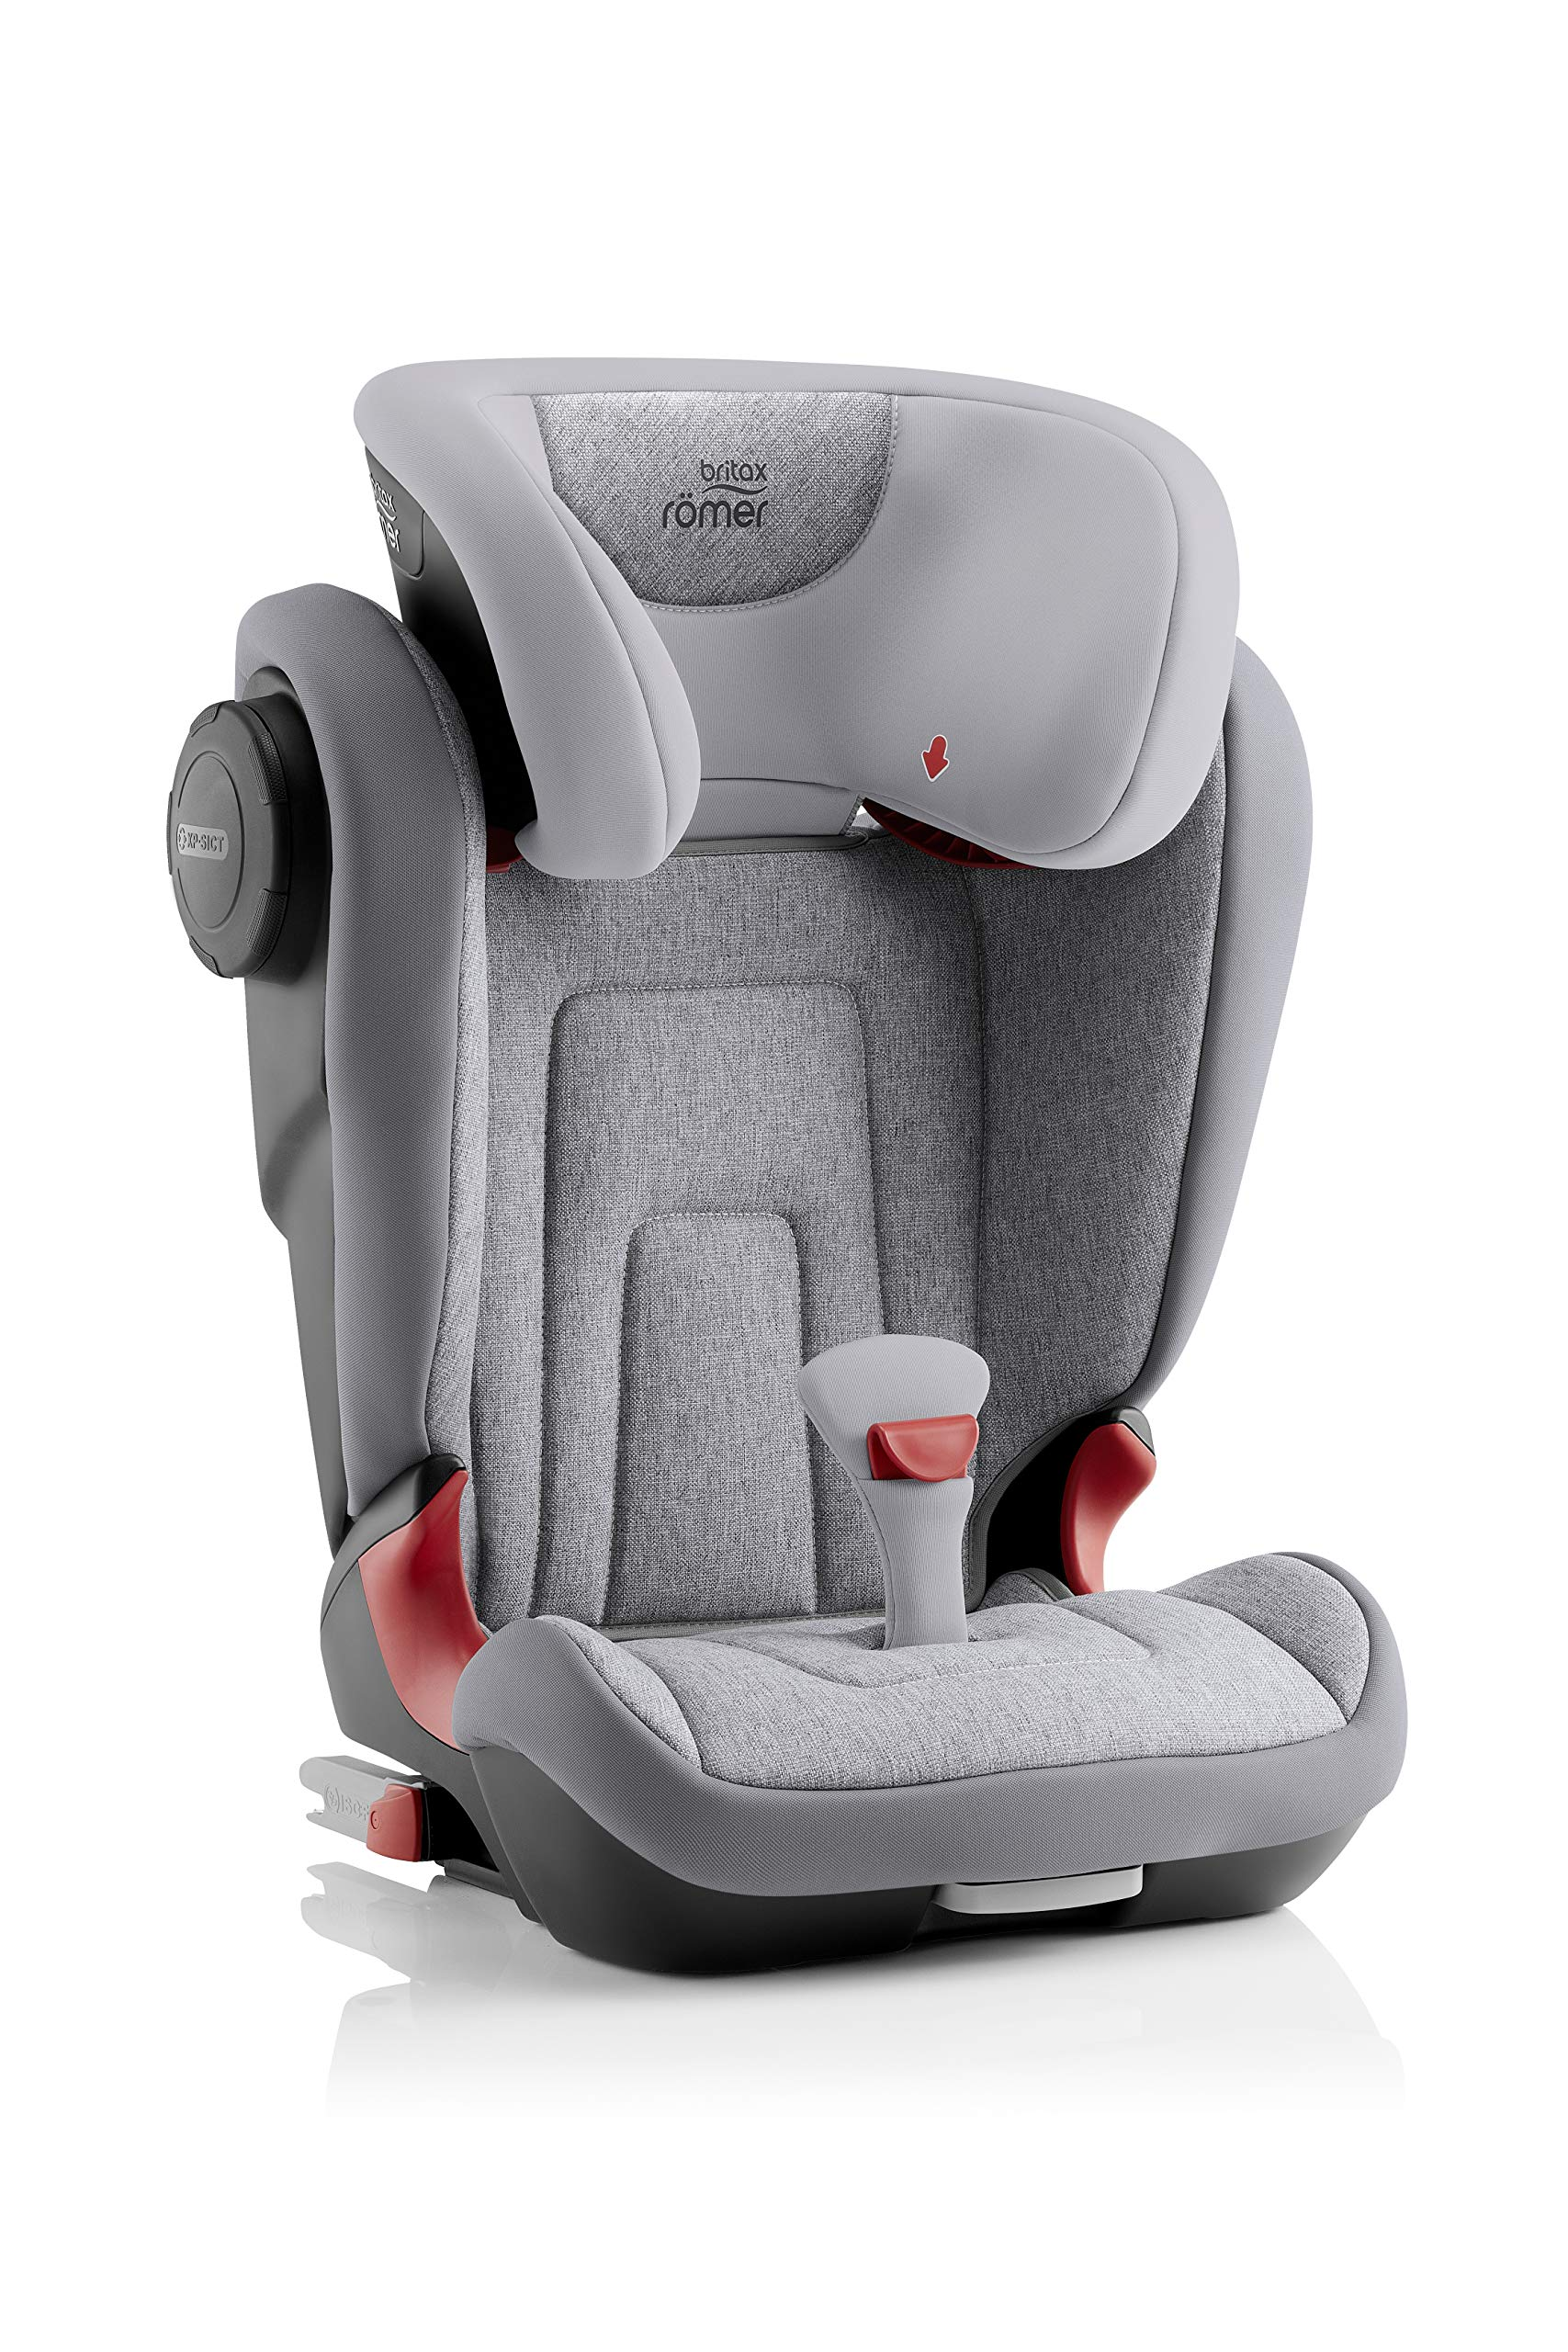 Britax Römer KIDFIX² S Group 2-3 (15-36kg) Car Seat - Grey Marble  Advanced side impact protection - sict offers superior protection to your child in the event of a side collision. reducing impact forces by minimising the distance between the car and the car seat. Secure guard - helps to protect your child's delicate abdominal area by adding an extra - a 4th - contact point to the 3-point seat belt. High back booster - protects your child in 3 ways: provides head to hip protection; belt guides provide correct positioning of the seat belt and the padded headrest provides safety and comfort. 3